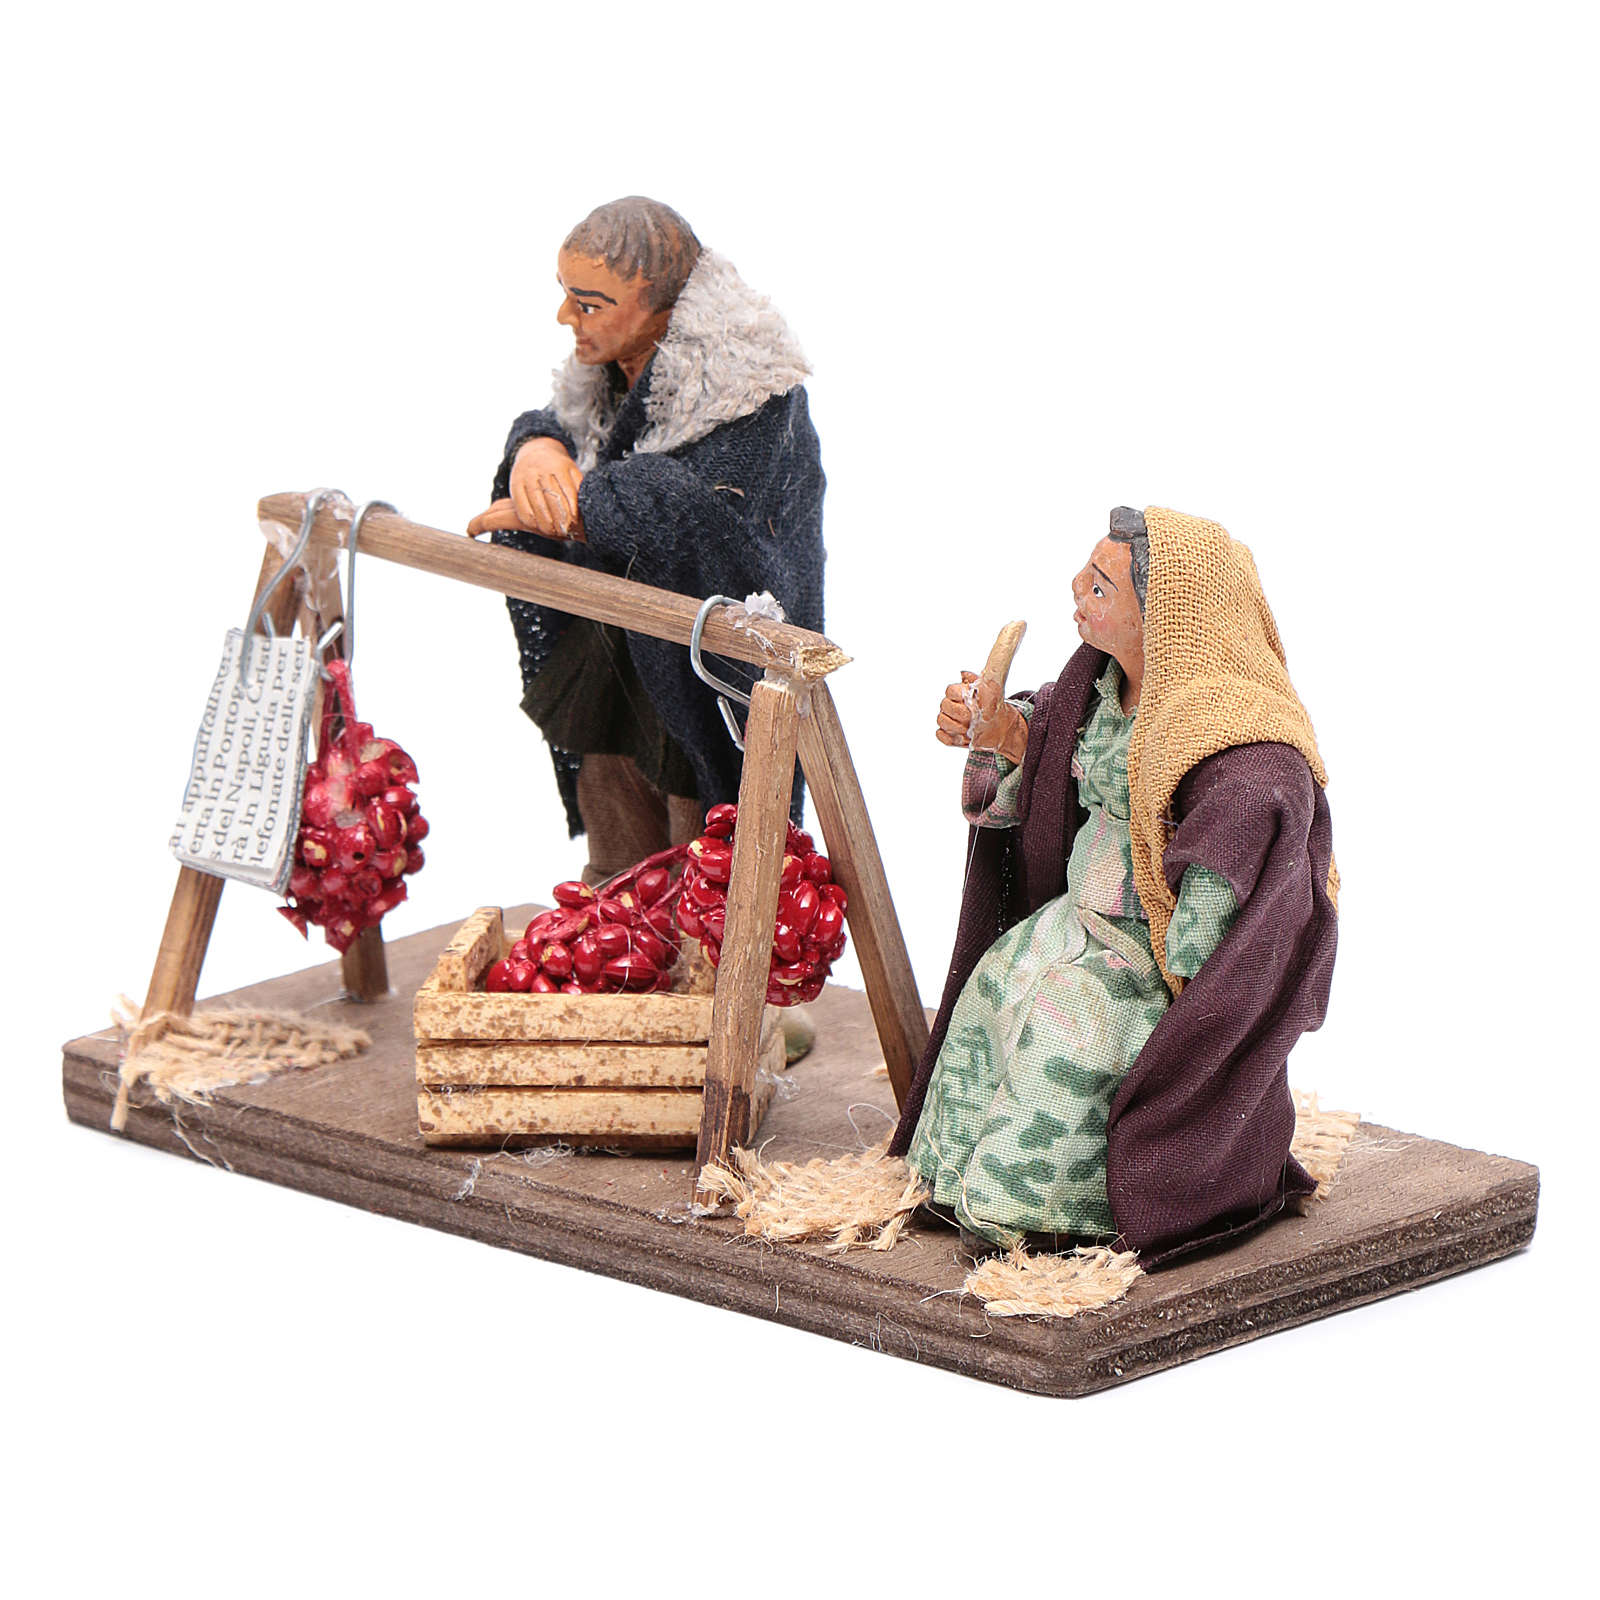 Tomato sellers 10cm, Neapolitan Nativity figurines 4